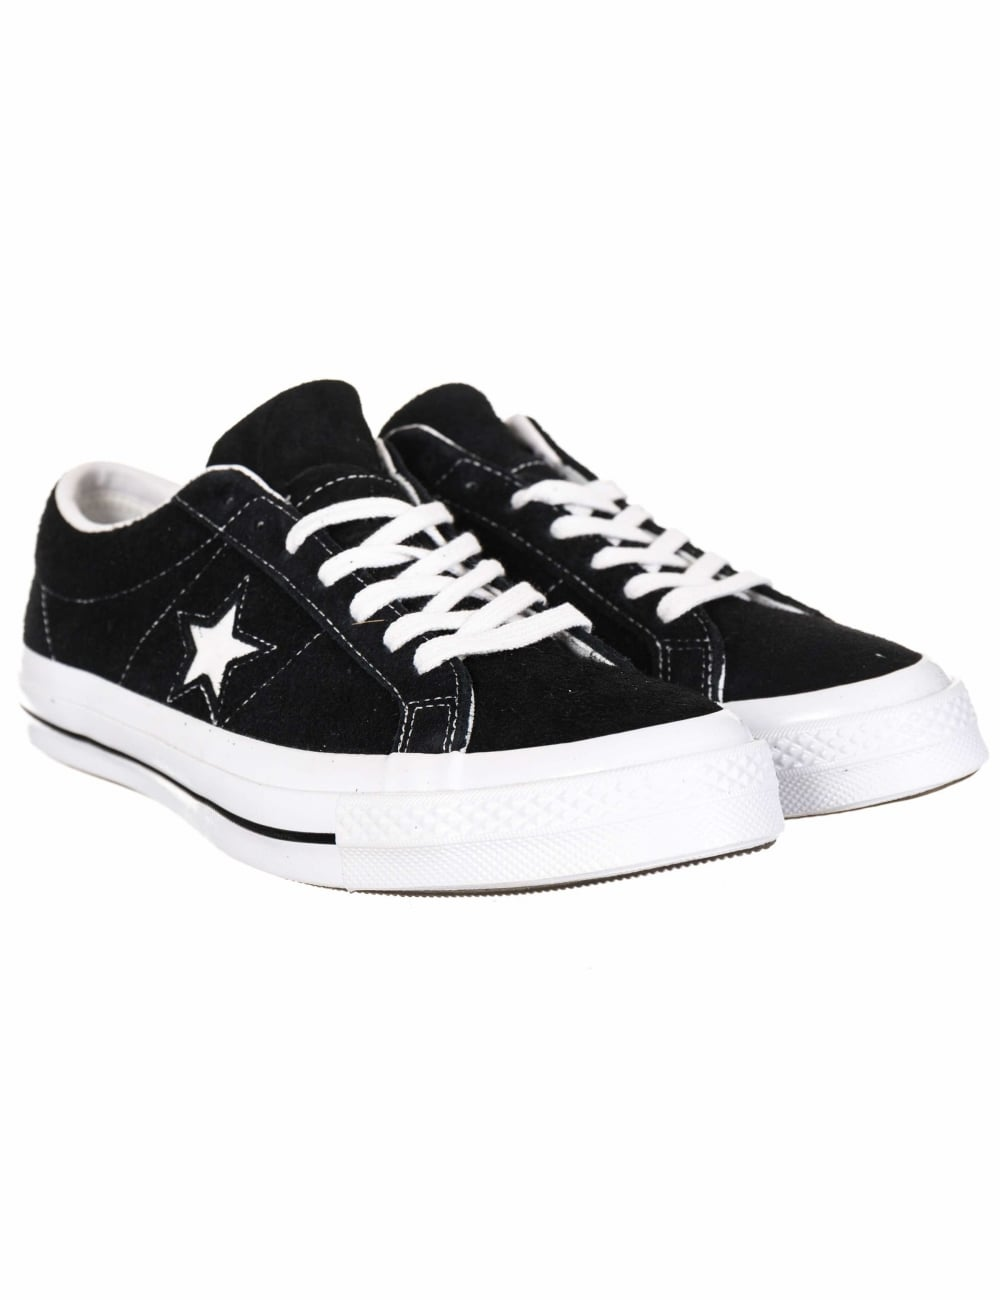 942f72c4caeded Converse One Star Ox Premium Suede Trainers - Black White - Footwear ...